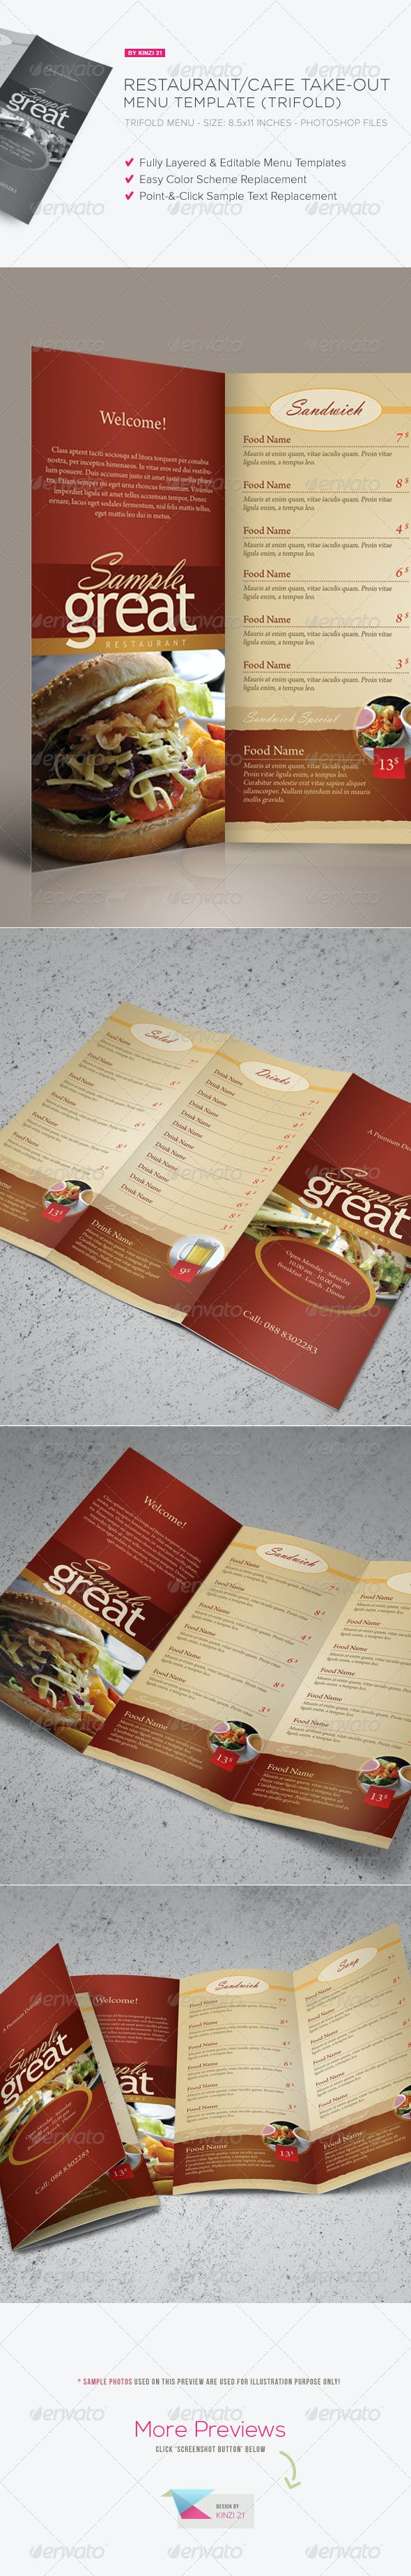 restaurant cafe take out menu template by kinzi21 graphicriver